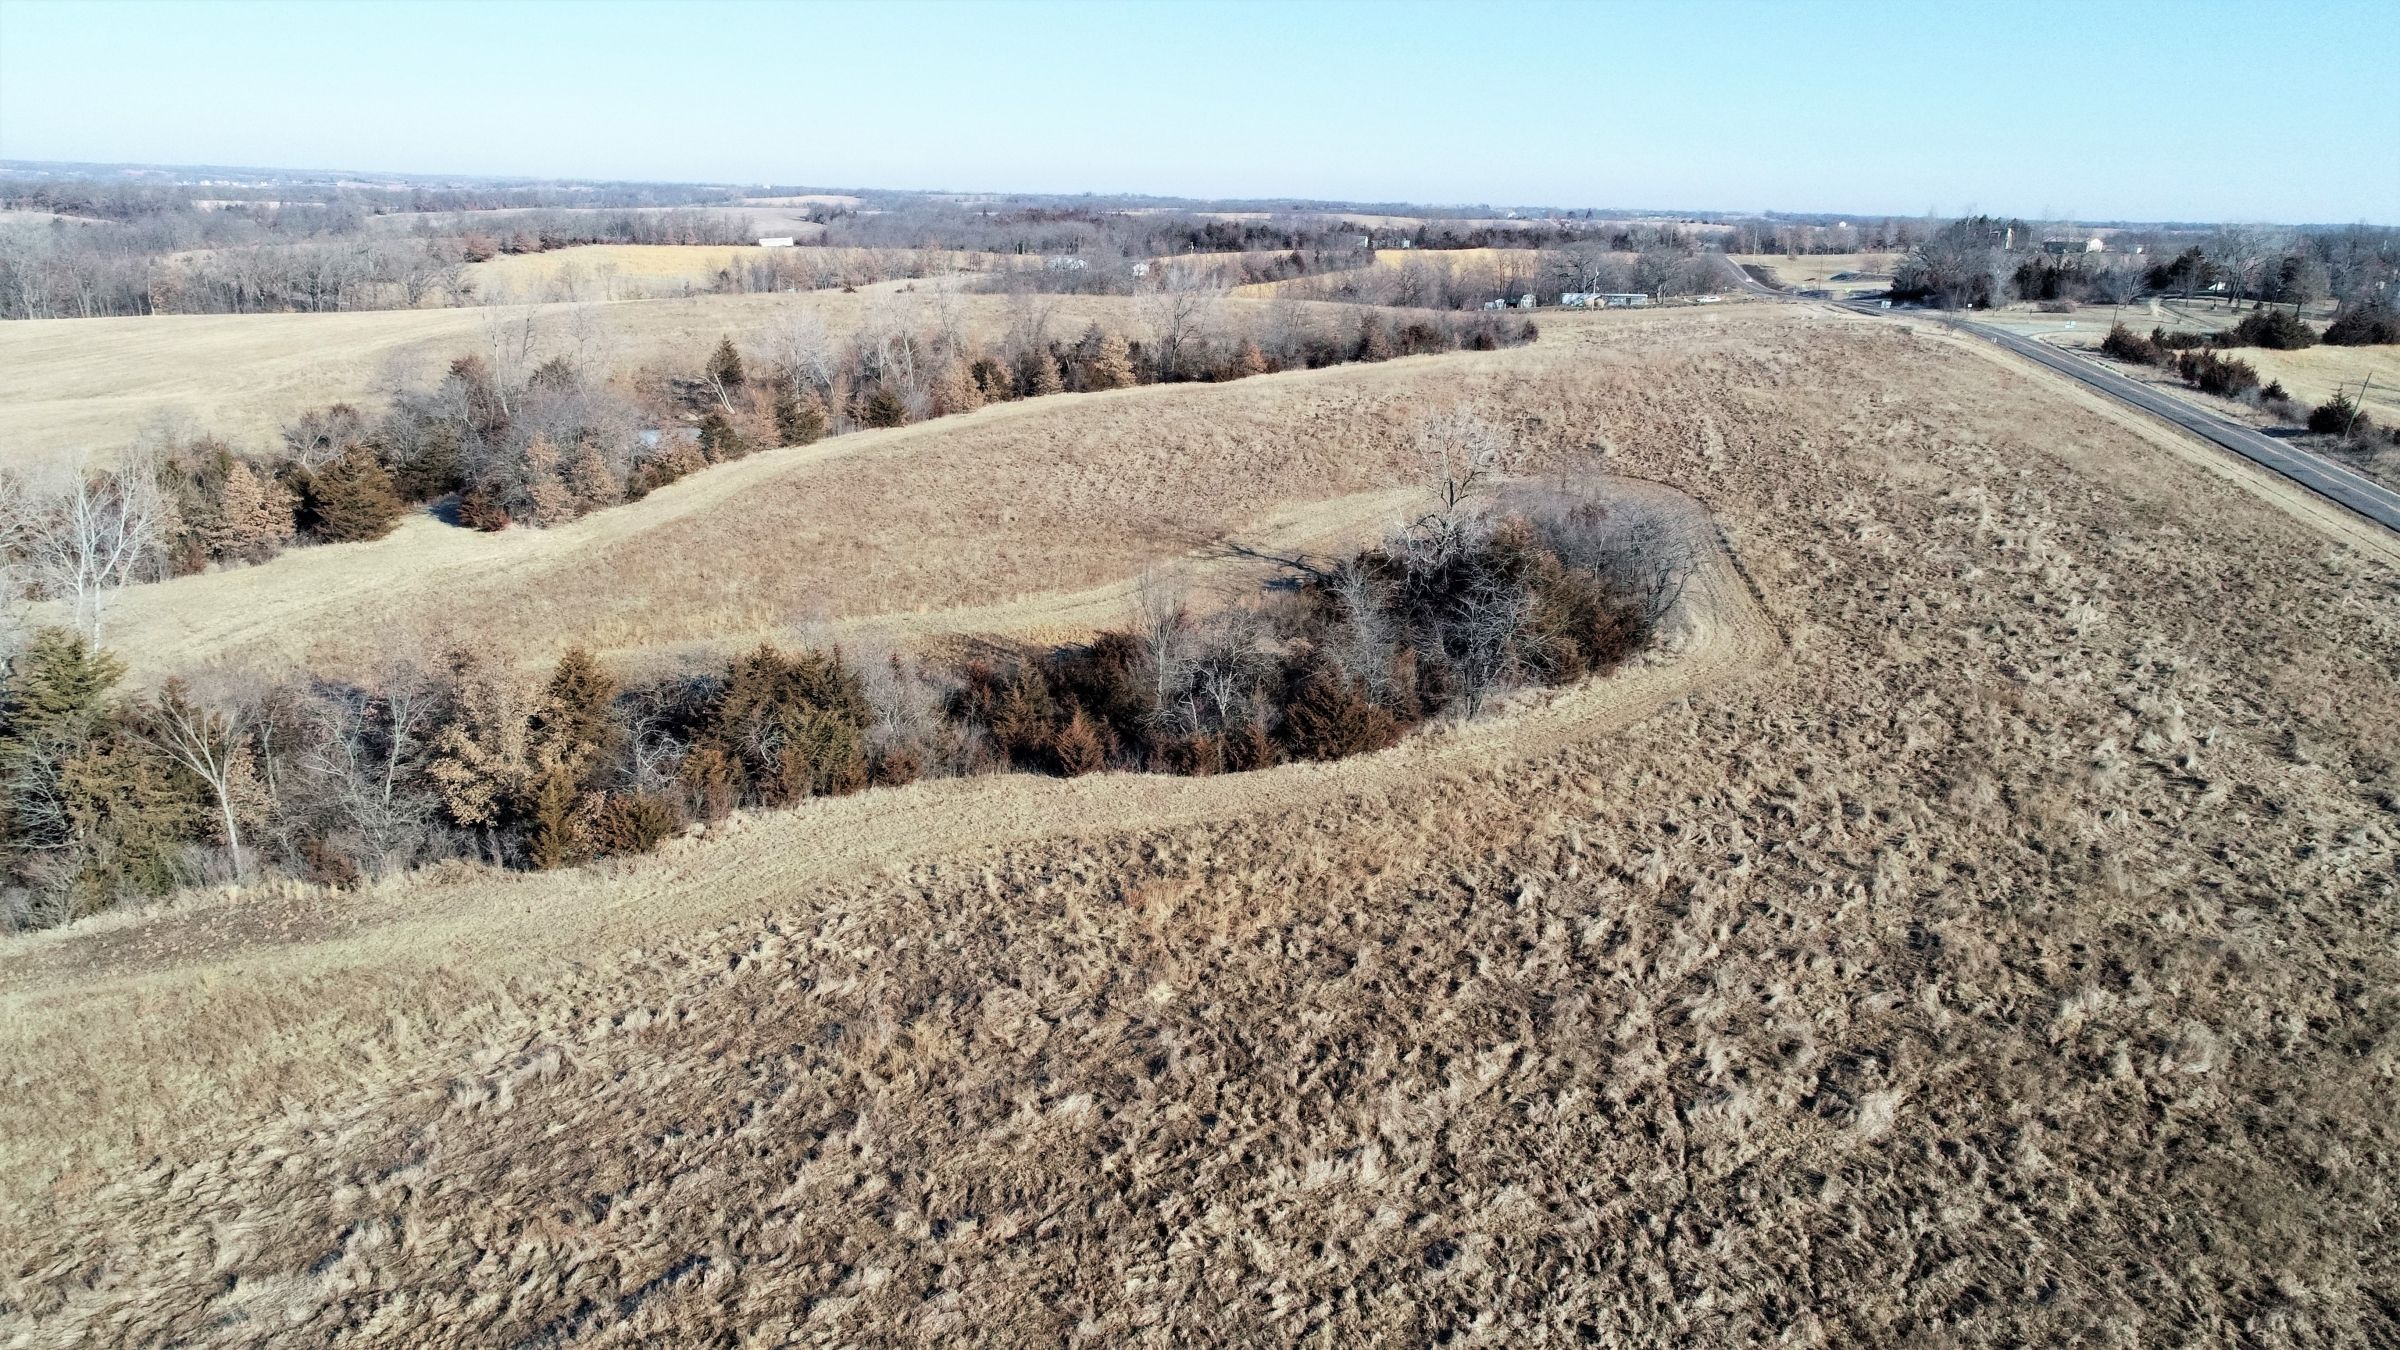 land-gentry-county-missouri-40-acres-listing-number-15397-2-2021-03-09-163949.jpg